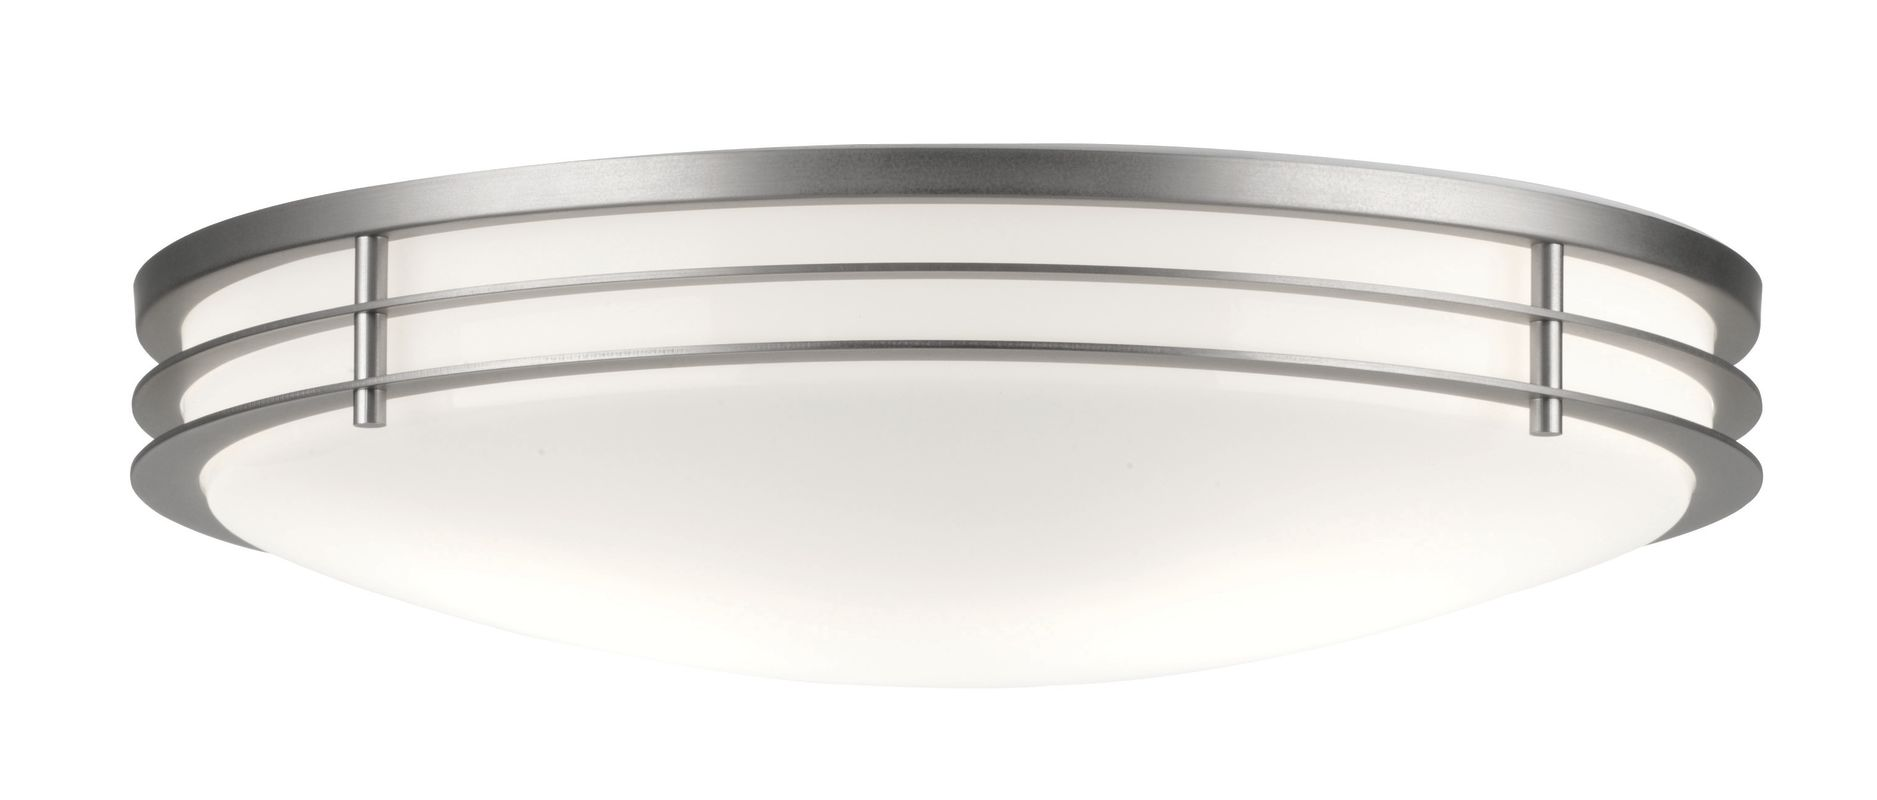 Forecast Lighting F2020U Two Light Energy Efficient Flush Mount